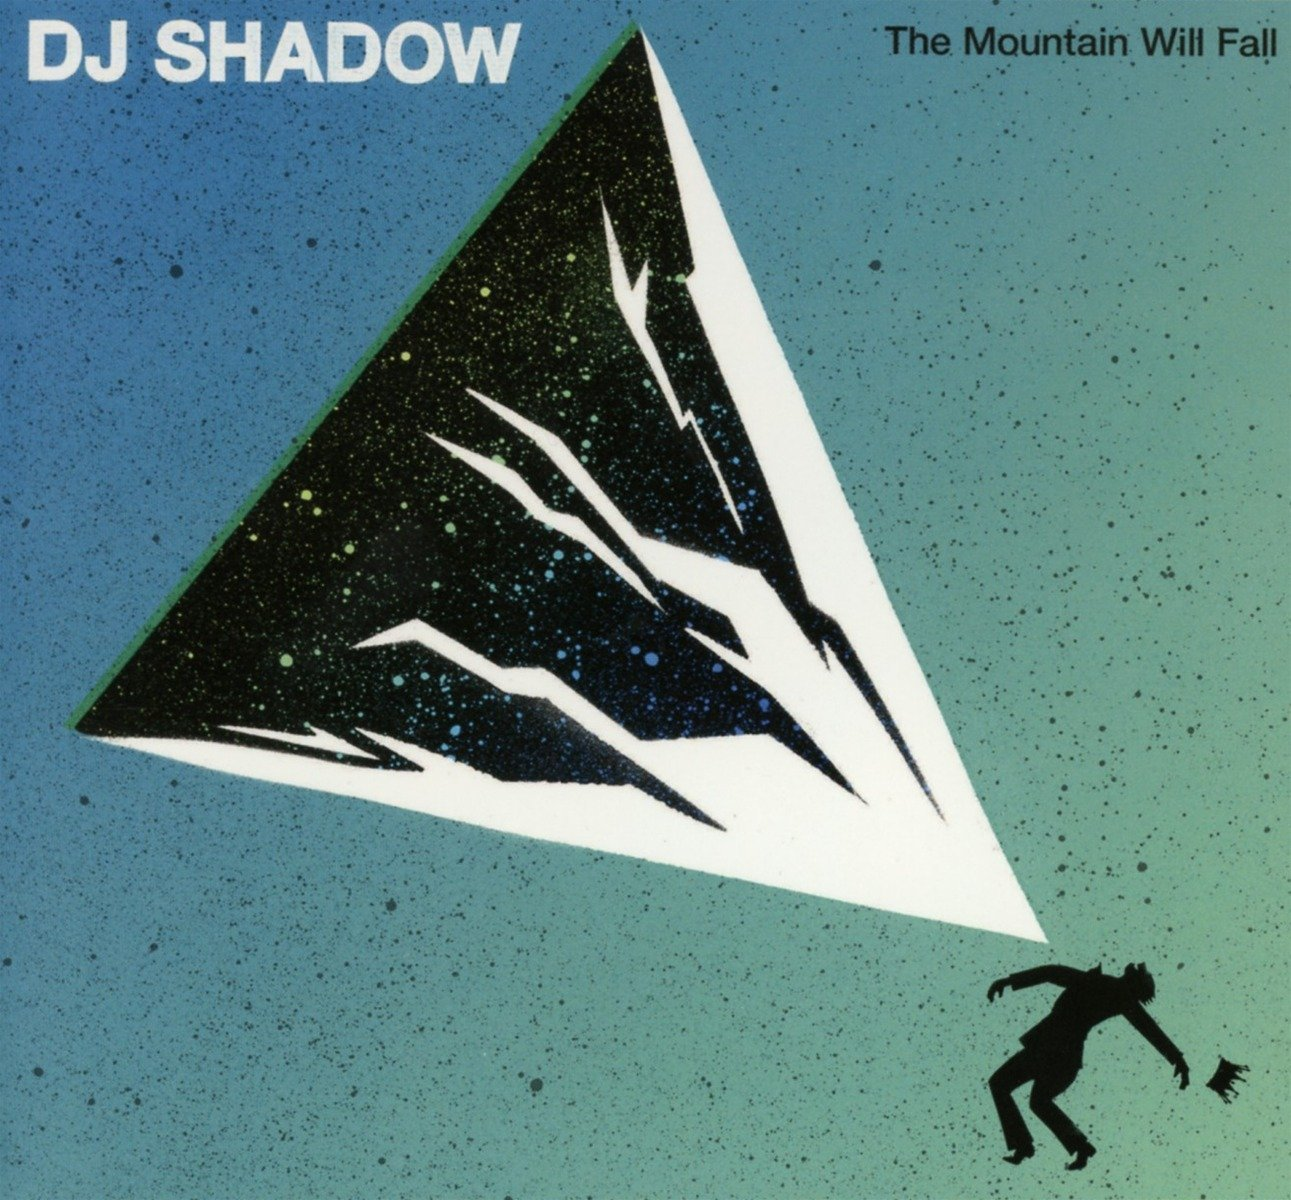 DJ Shadow, The Mountain Will Fall